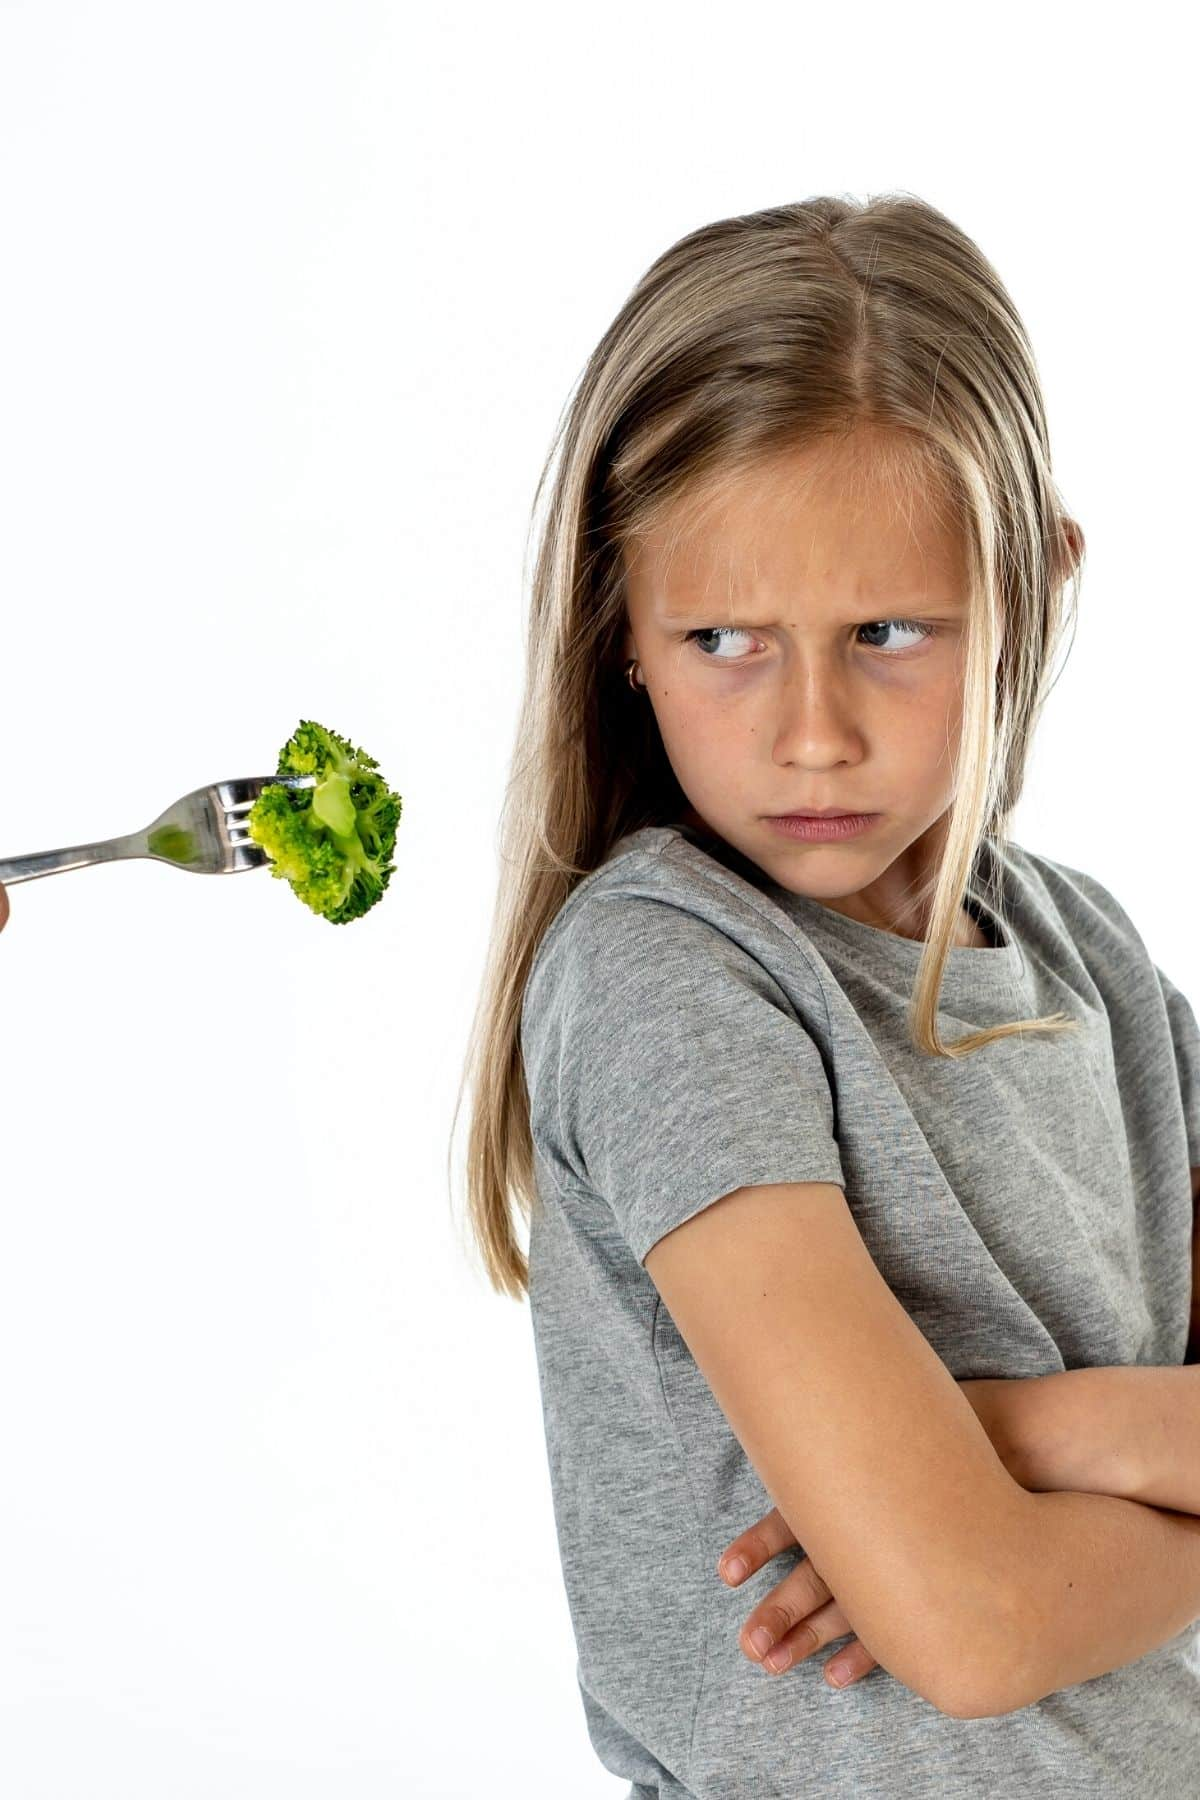 young girl refusing a bite of broccoli